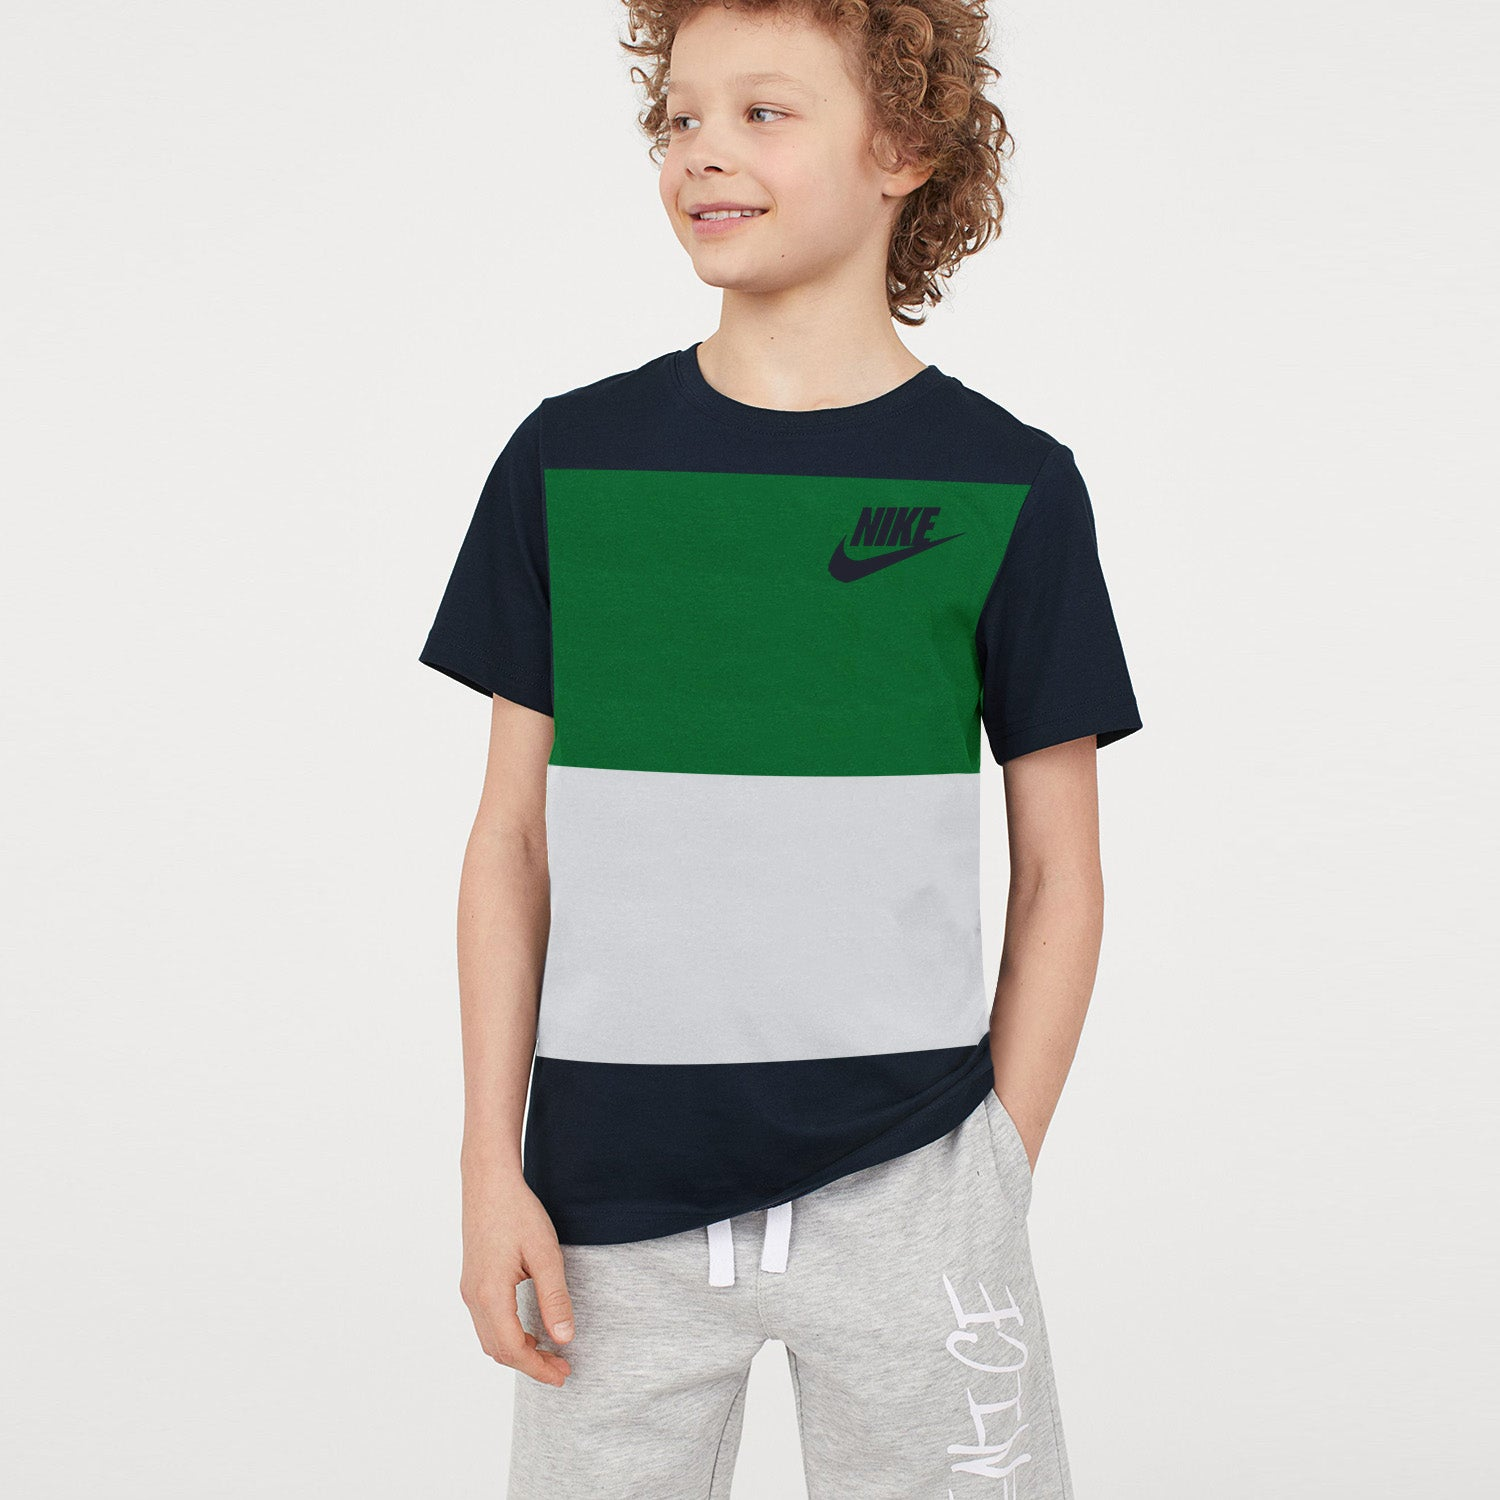 NK Crew Neck Single Jersey Short Sleeve Long Tee Shirt For Boys-Dark Navy with Green & Ice Blue Panels-BE11929